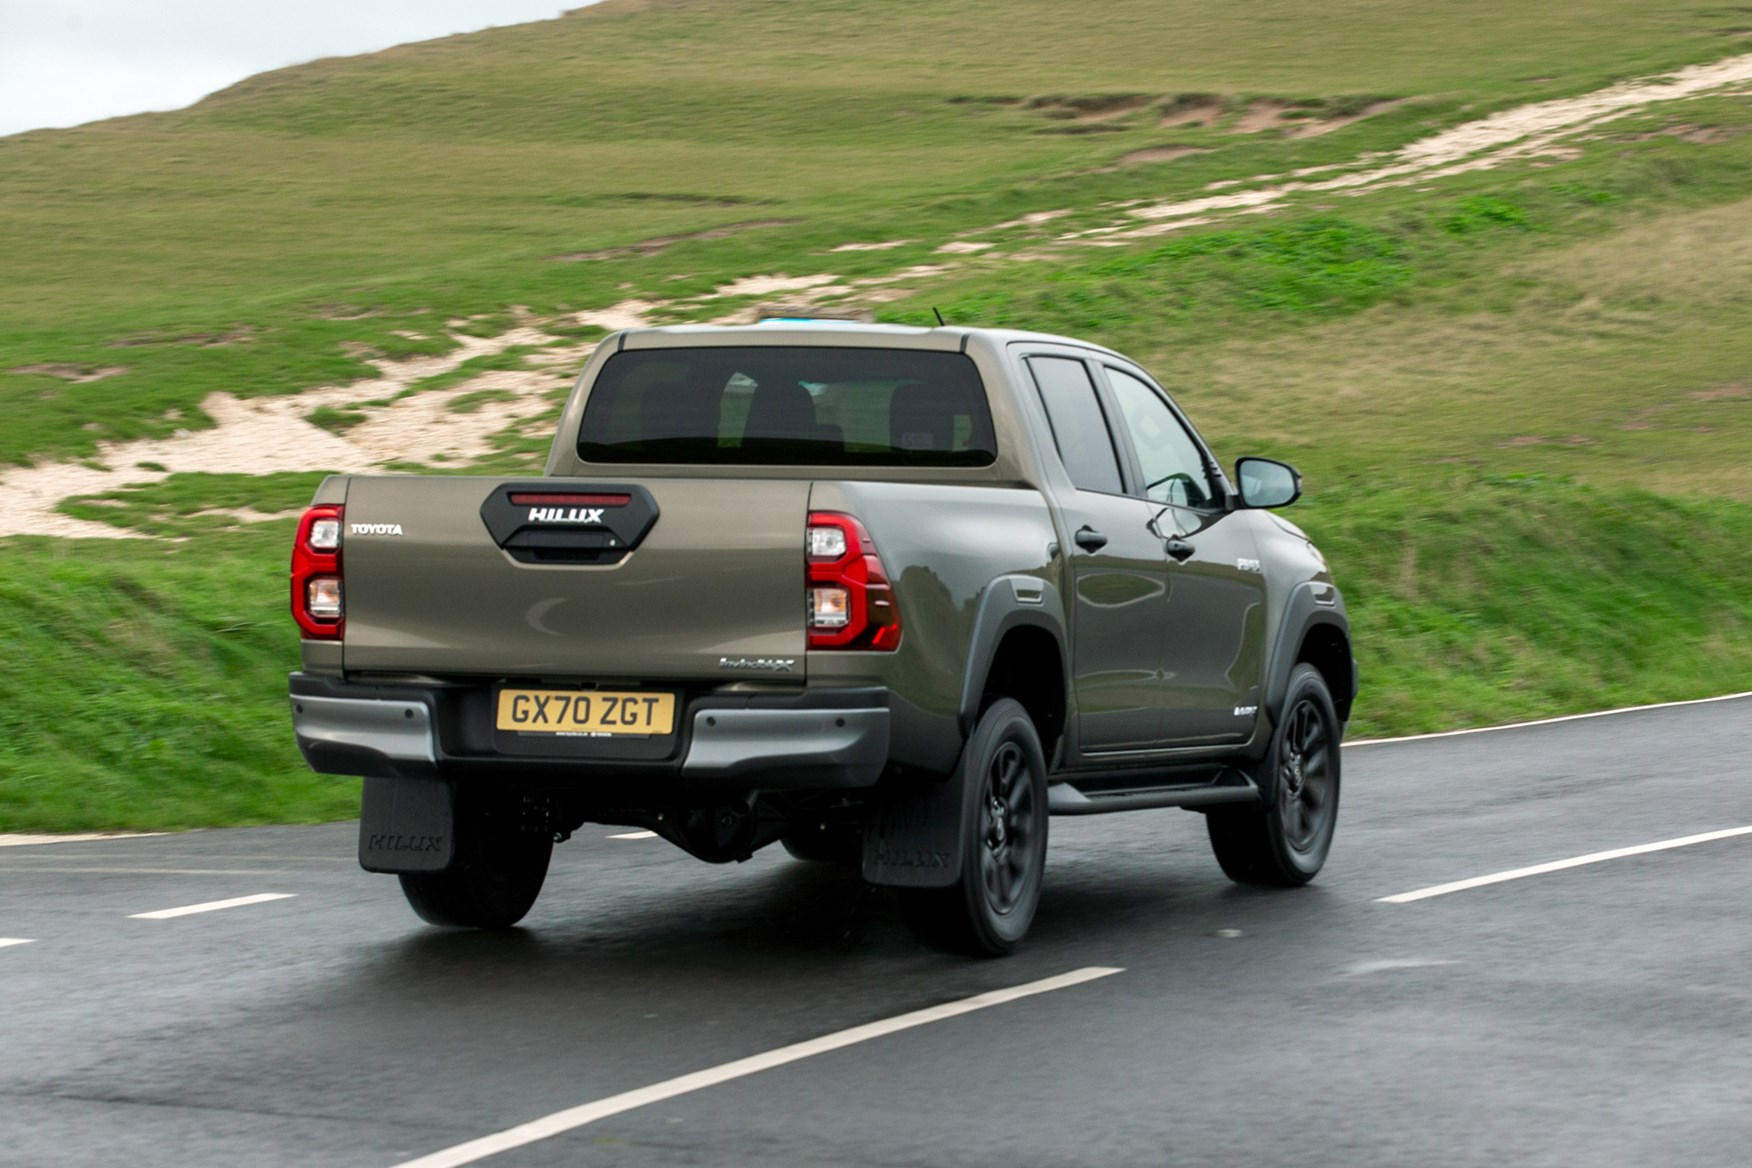 Toyota Hilux review, 2020 facelift, Invincible X, driving, rear view, bronze